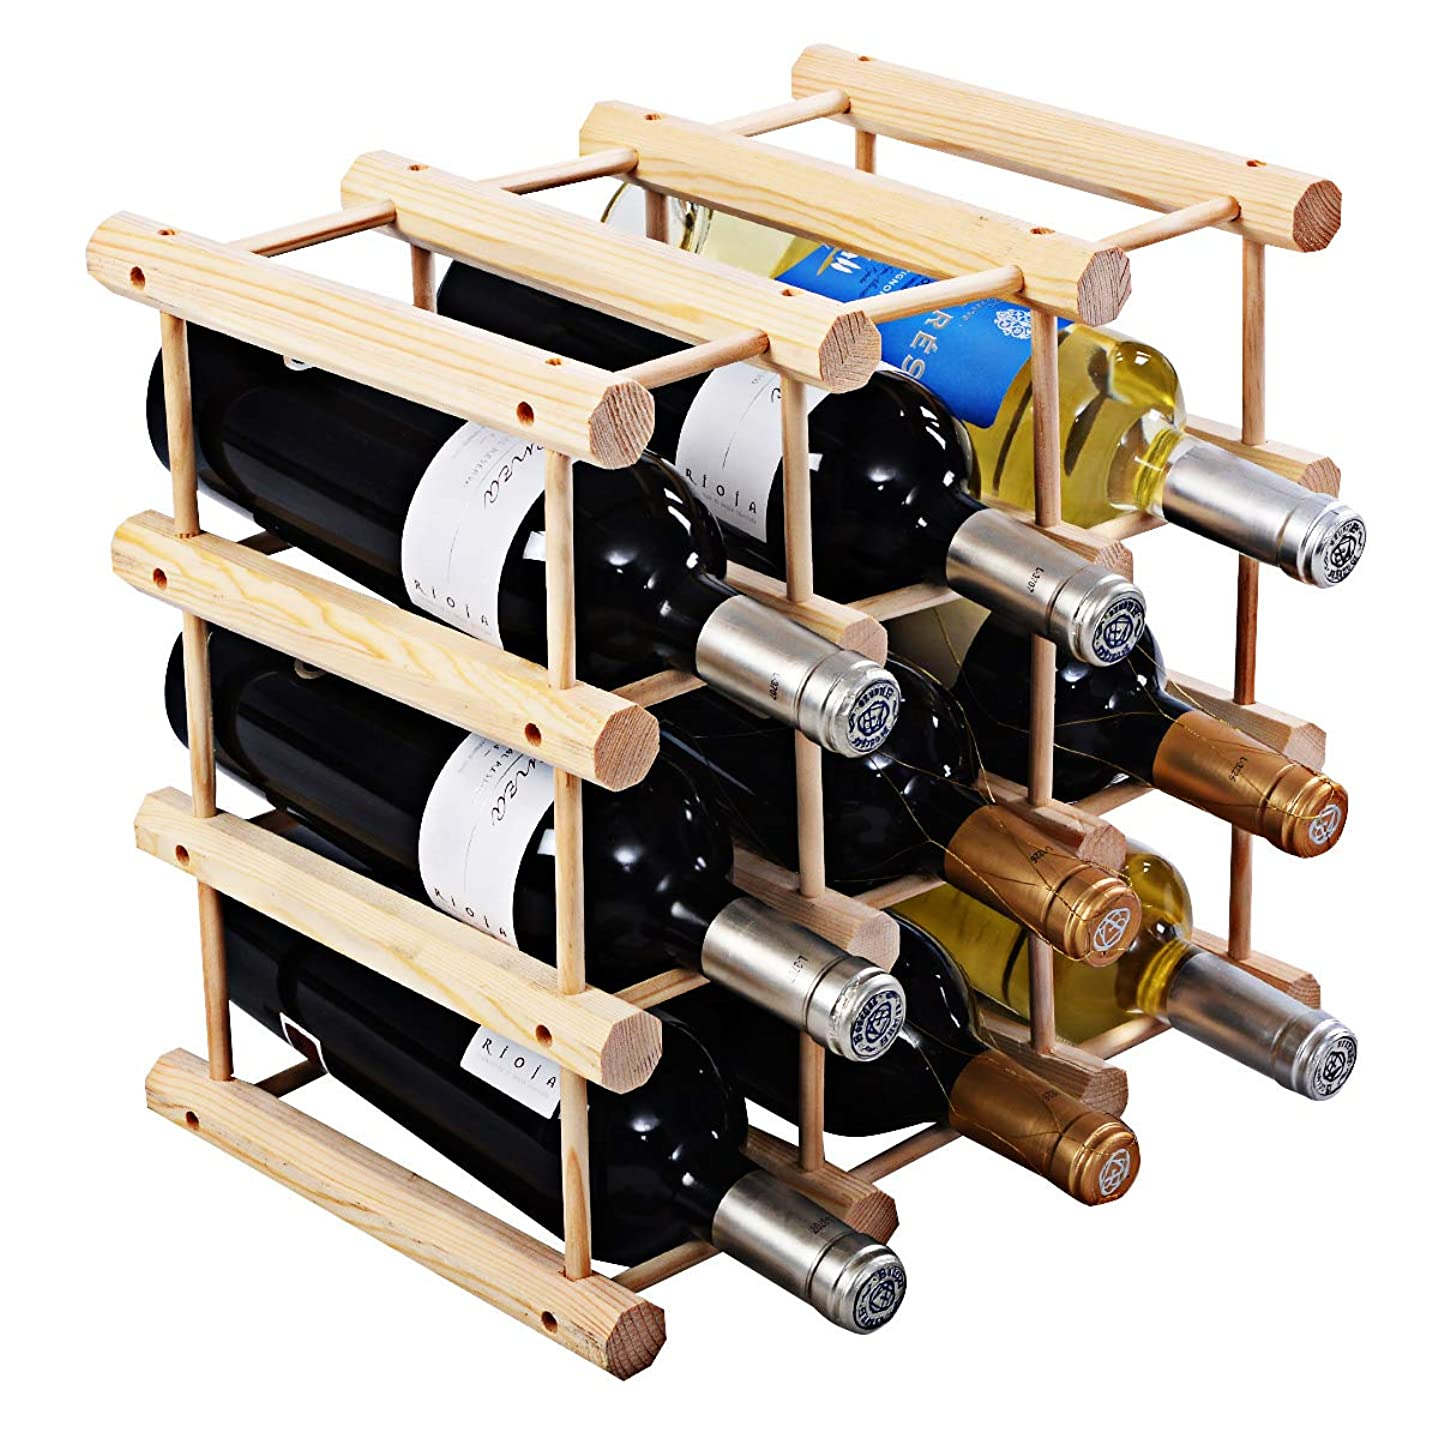 Giantex Wine Rack Bottle Display Shelves Wood Stackable Storage Stand Wobble-Free Wine Bottle Holder Organizer for Bar, Wine Cellar, Basement, Home Kitchen Free Standing Bottle Rack (12-Bottle)